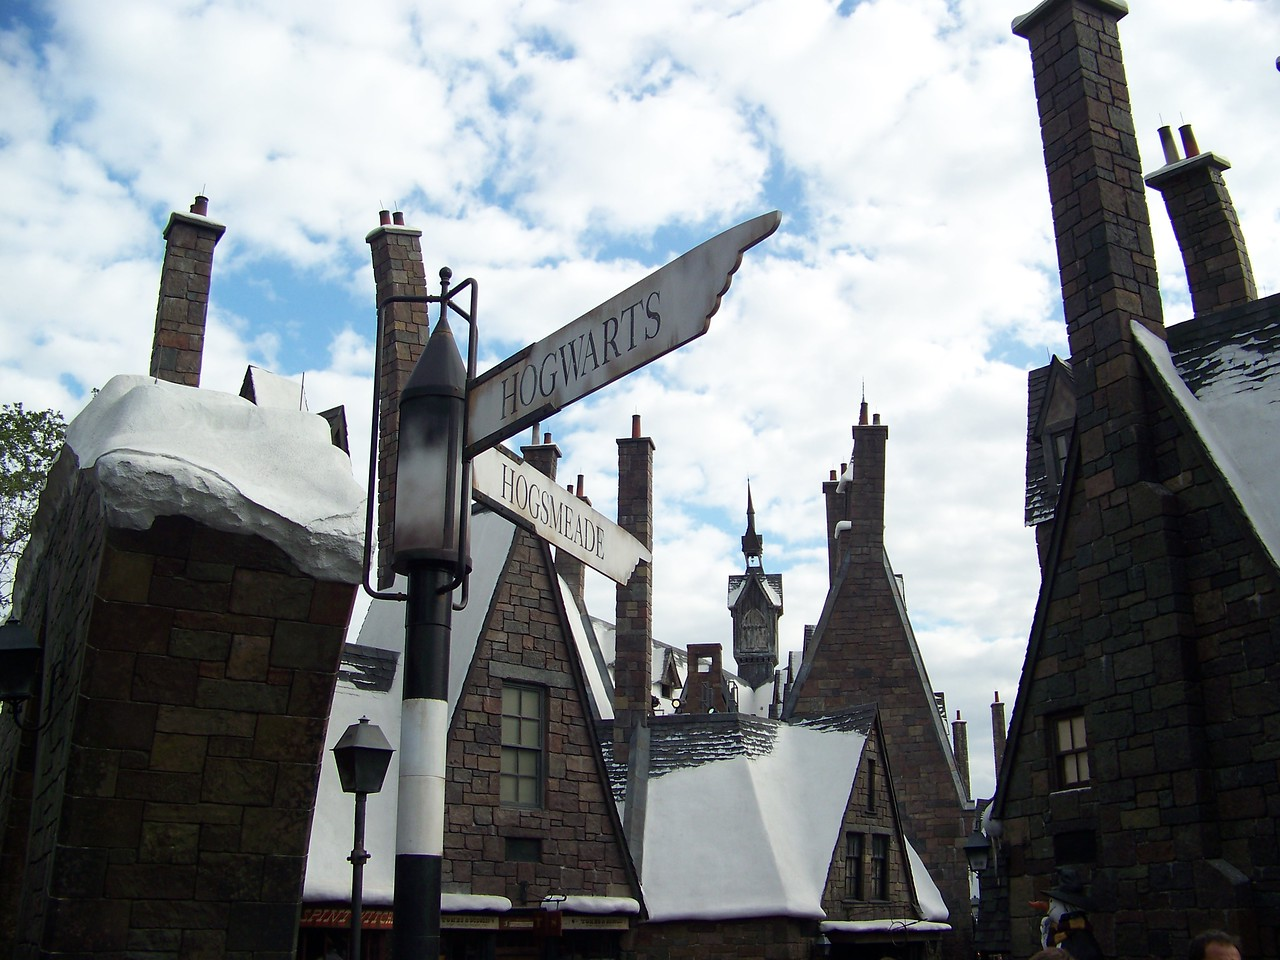 For the main attraction here, we must follow the signs to Hogwarts itself.<br /> [Universal Islands of Adventure - Wizarding World of Harry Potter]